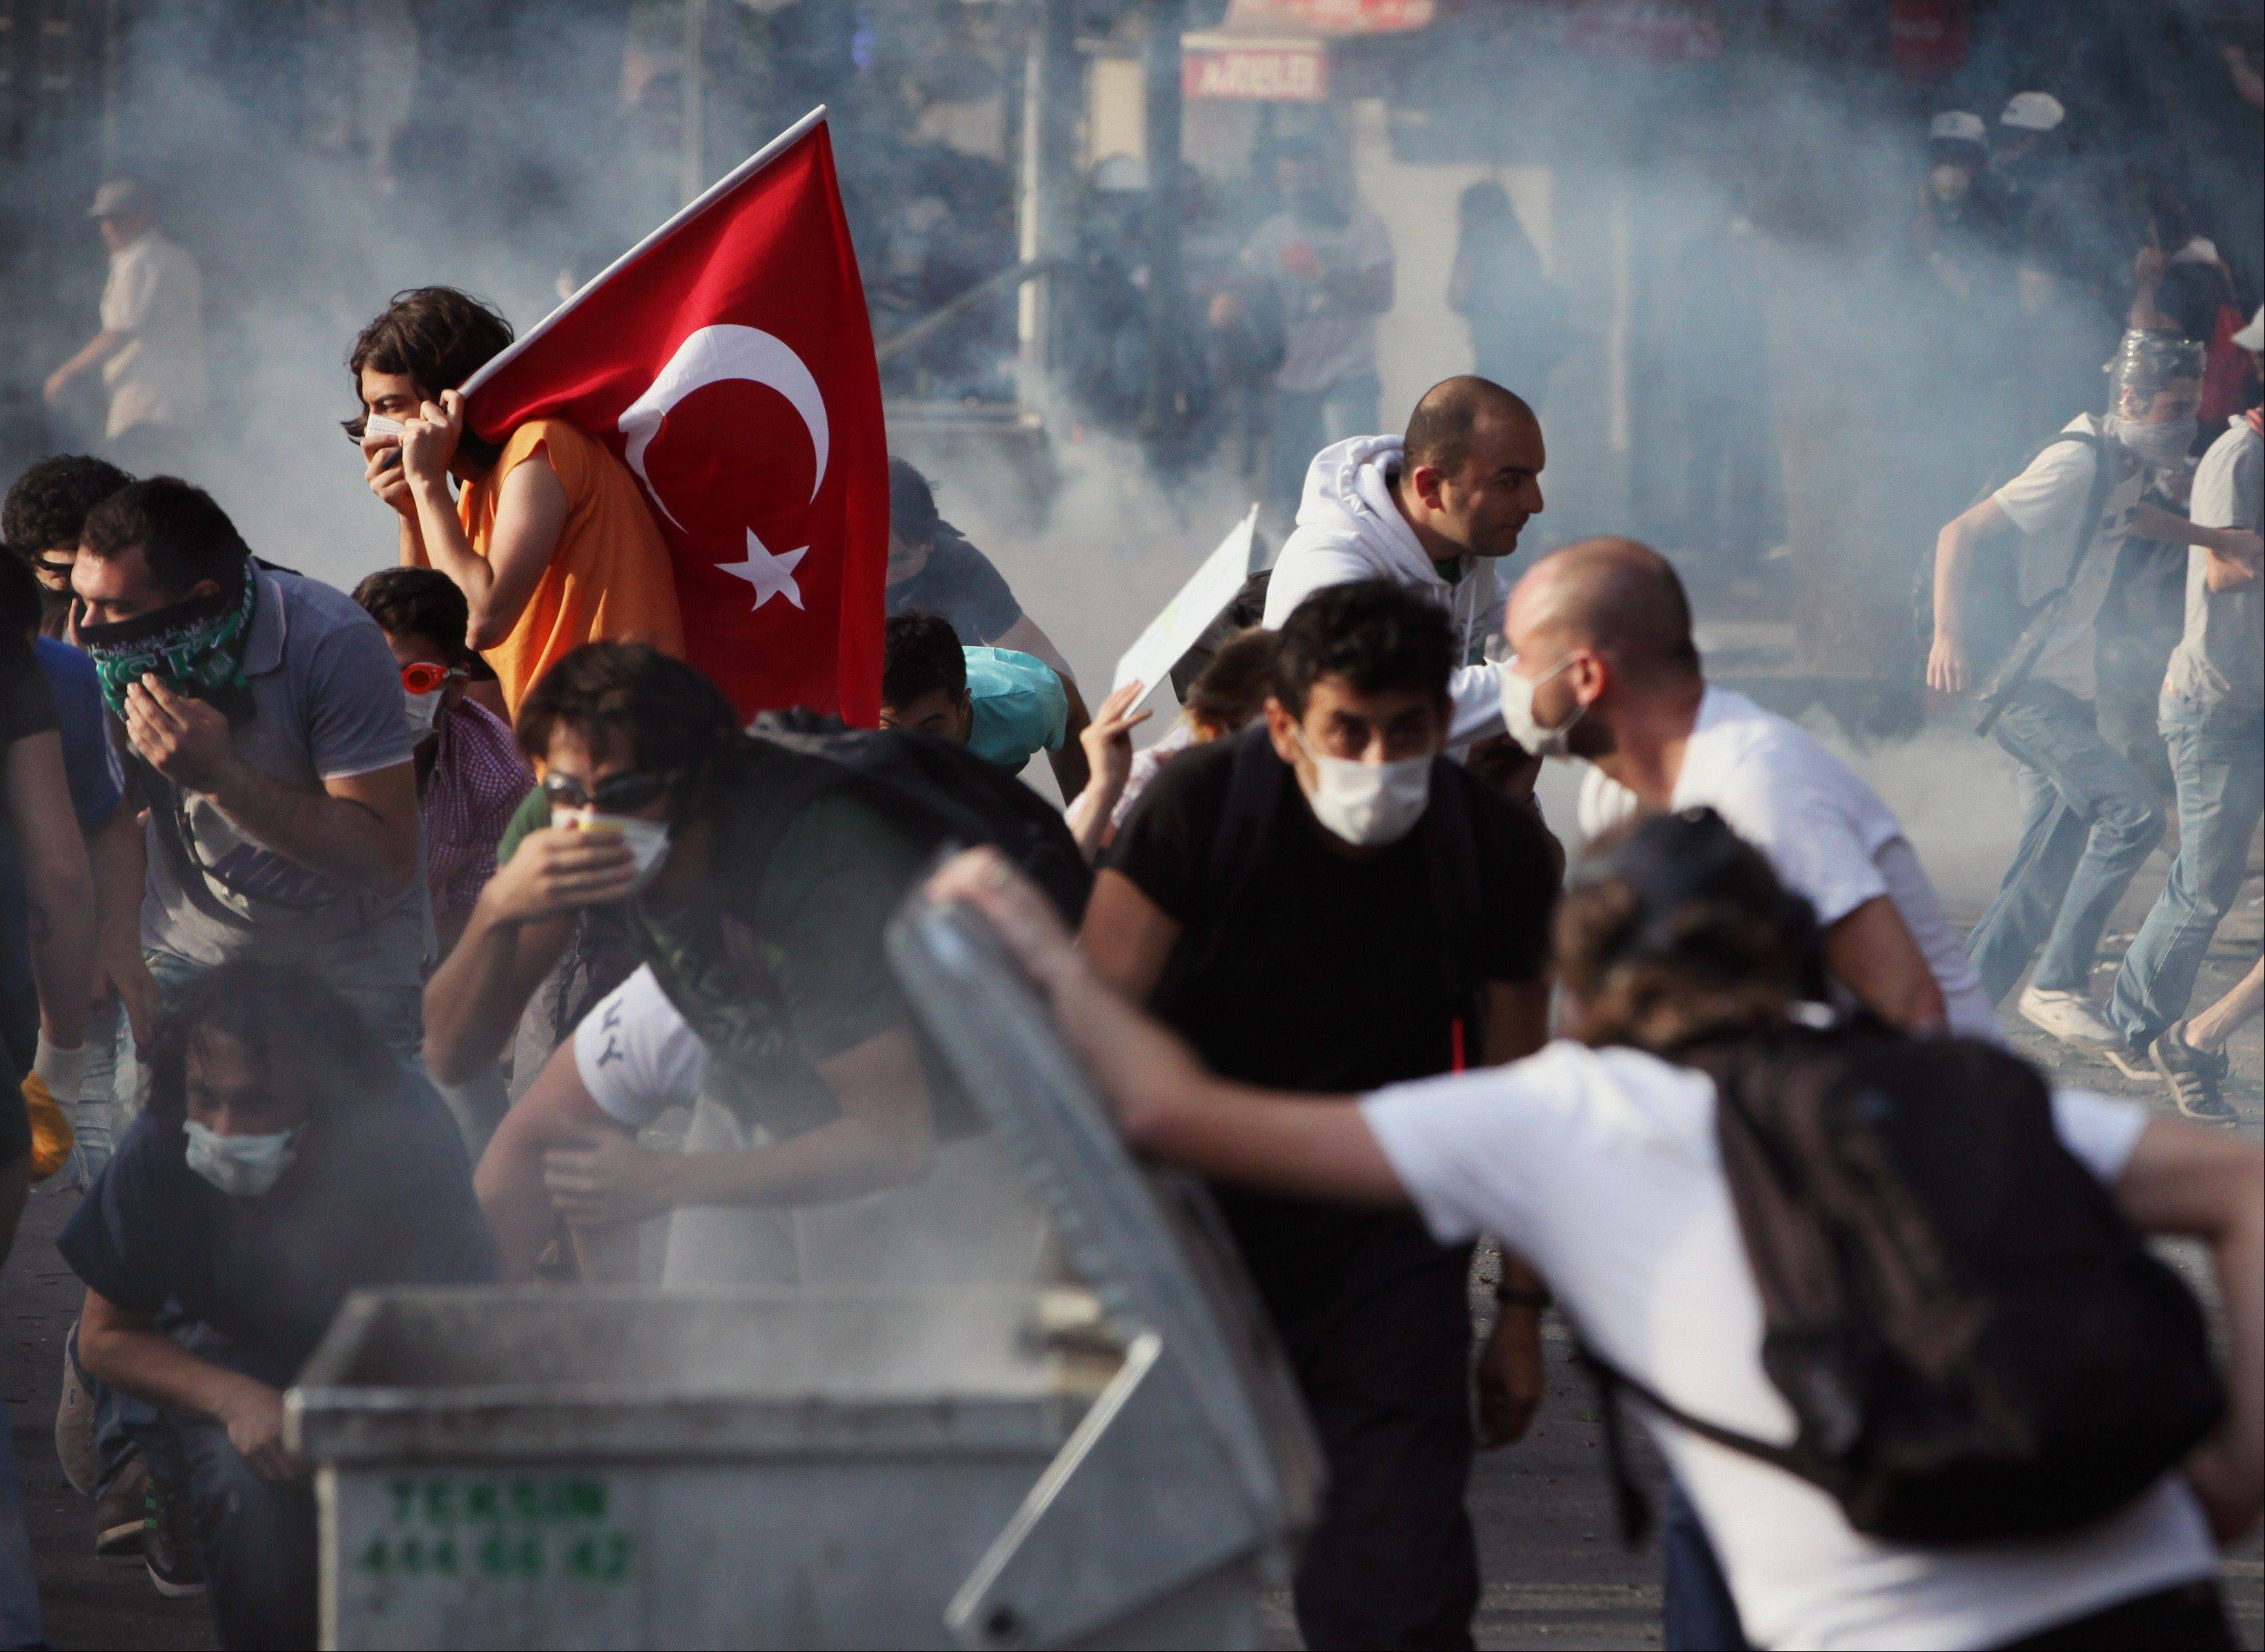 Young Turks clash with security forces in Ankara, Turkey, Sunday. The demonstrations grew out of anger over a violent police crackdown of a peaceful environmental protest at Istanbul�s Taksim Square and spread to other Turkish cities.